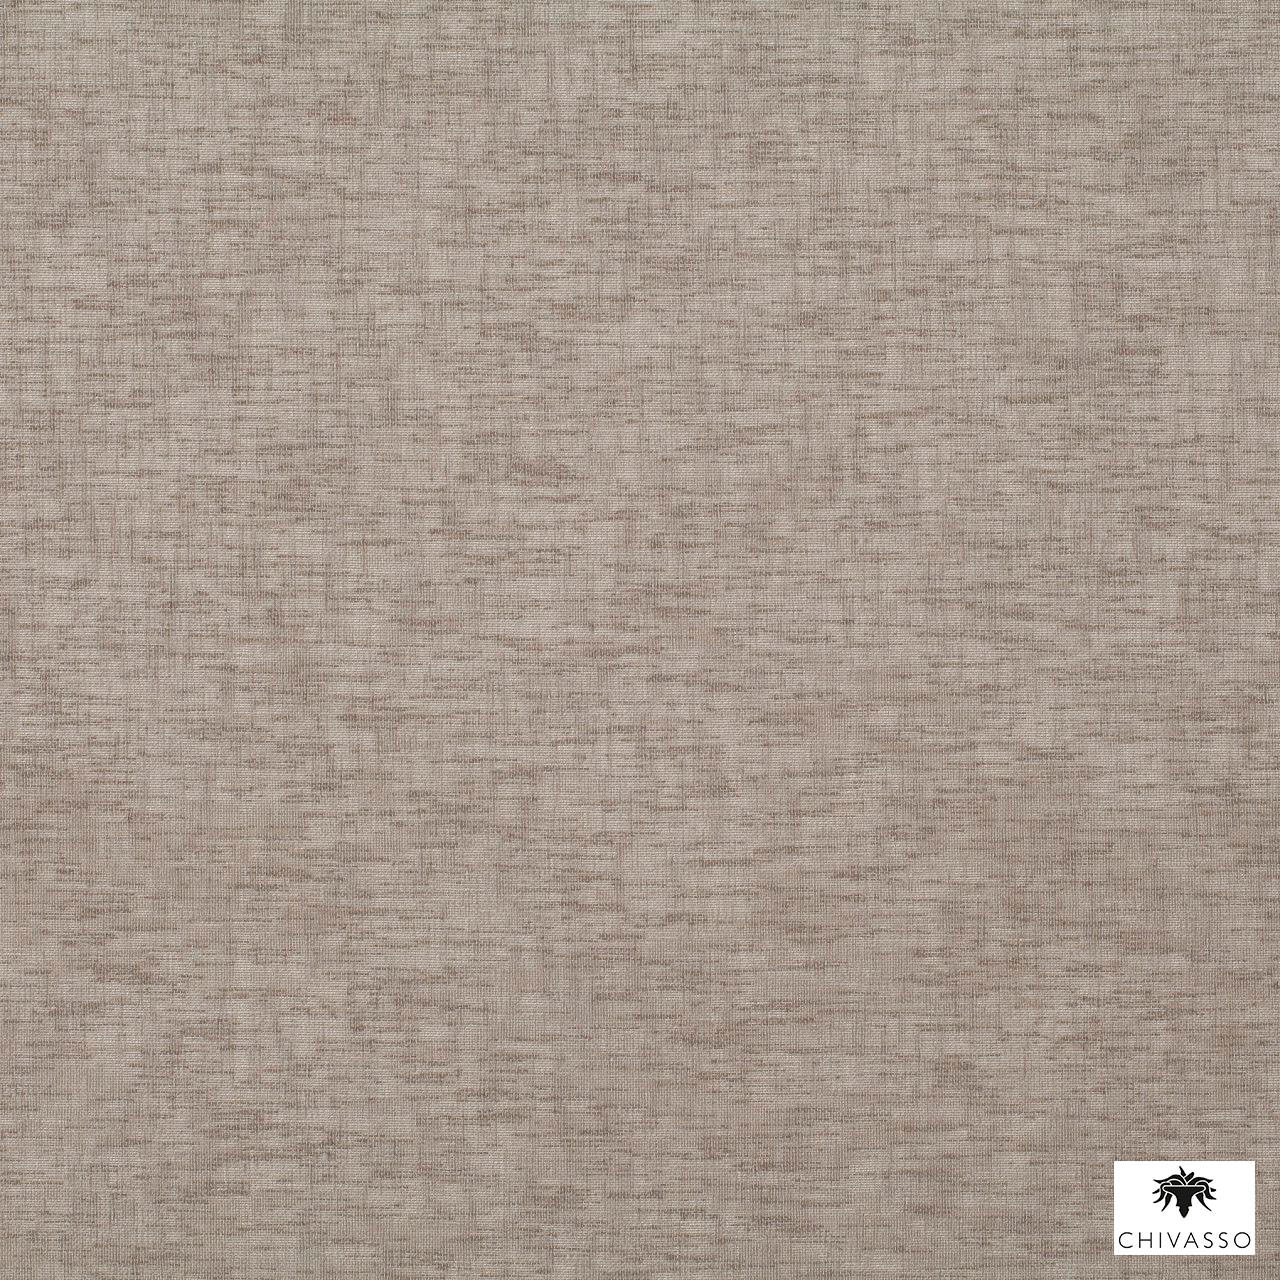 Chivasso - Stazzano - Ce5116-074  | Curtain Fabric - Plain, Synthetic, Tan, Taupe, Domestic Use, Railroaded, Wide Width